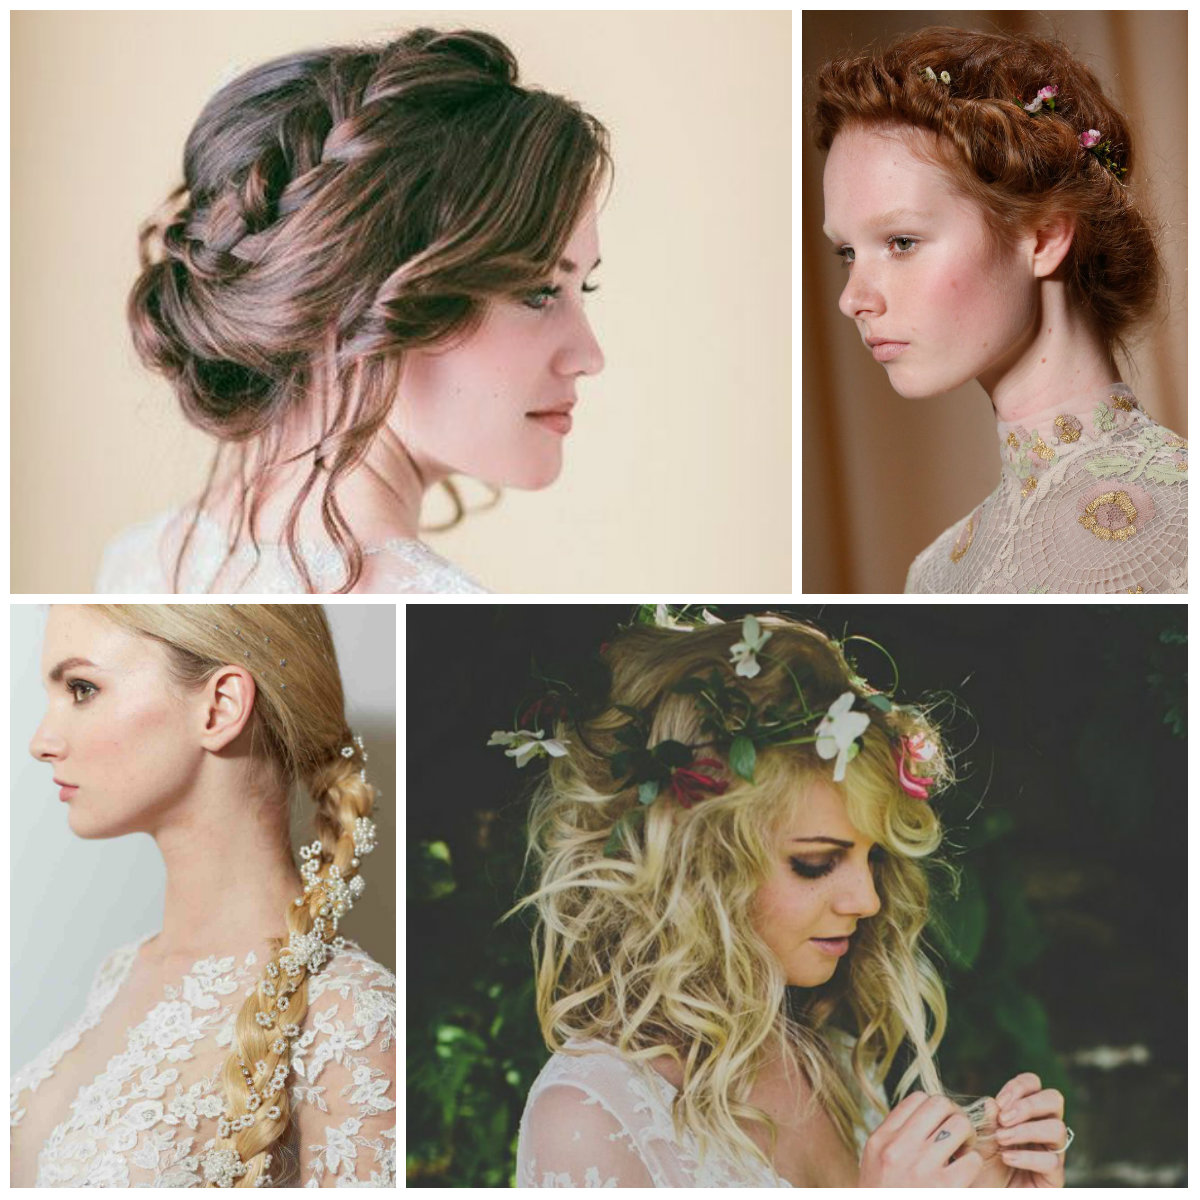 Spring Hairstyles Impressive Wedding Hairstyle Trends For 2016 What Do You Think #weddingideas